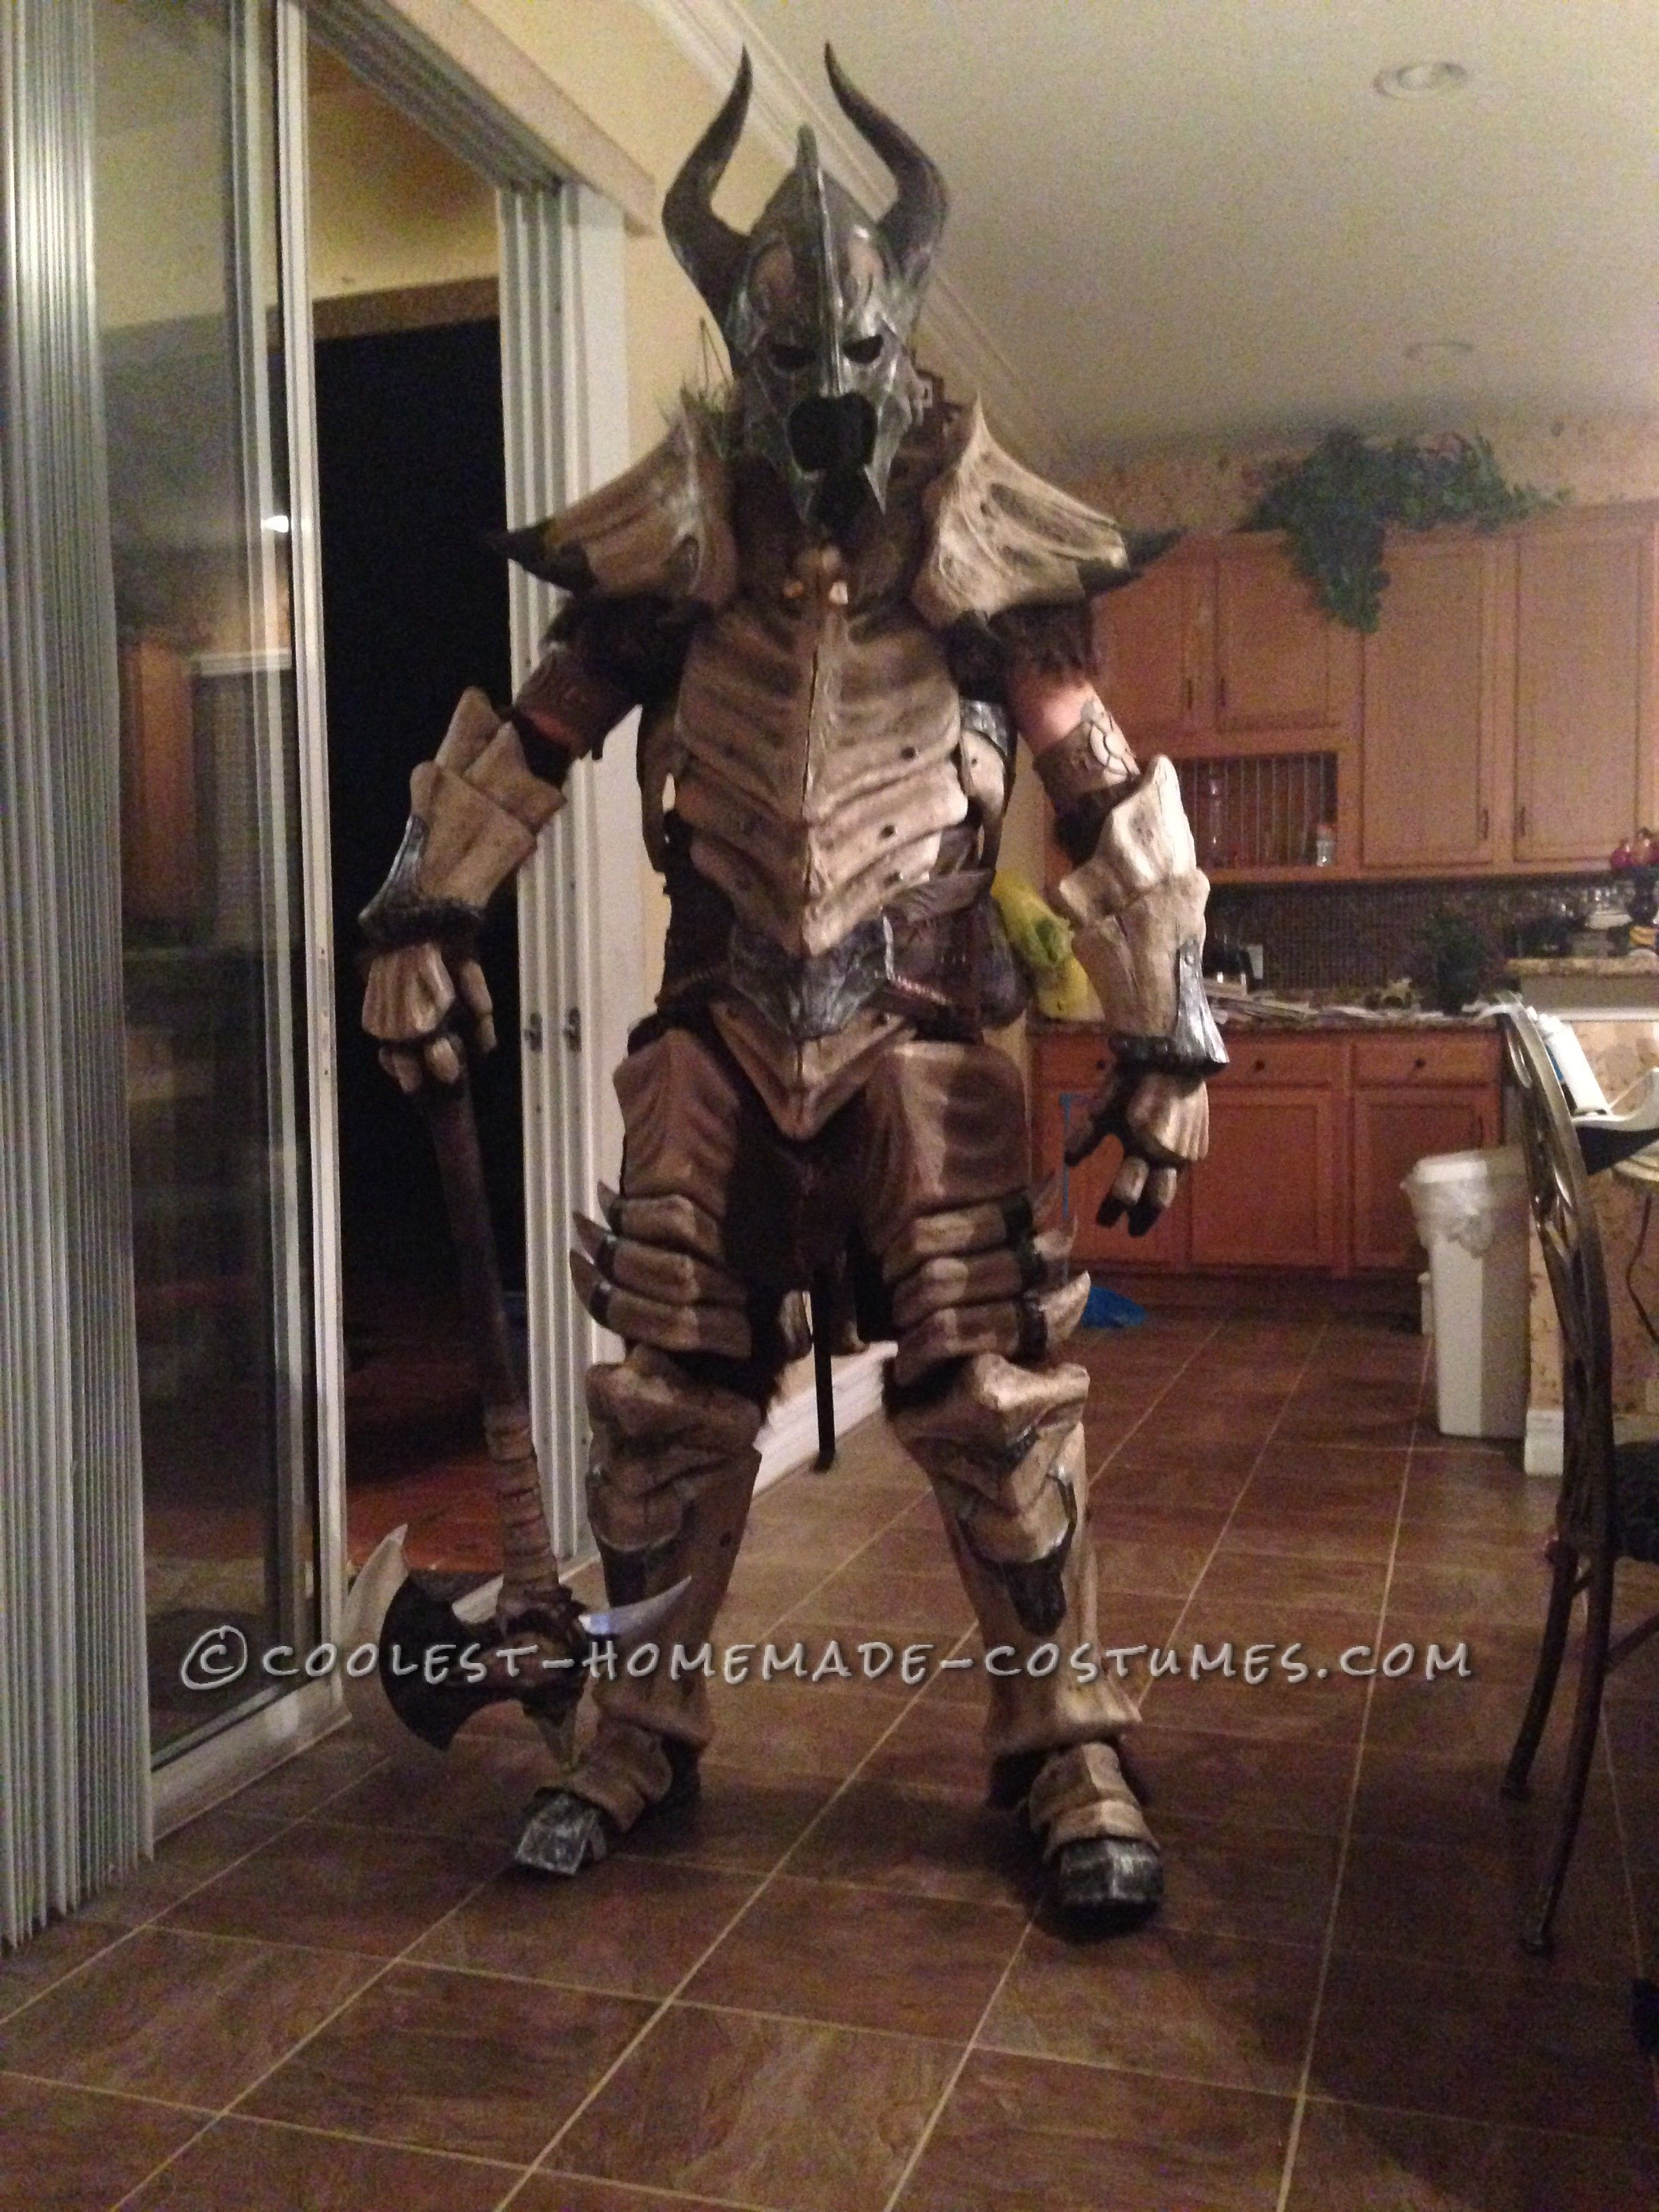 Skyrim Dragonbone Armor Costume | Dragonbone armor, Skyrim and ...